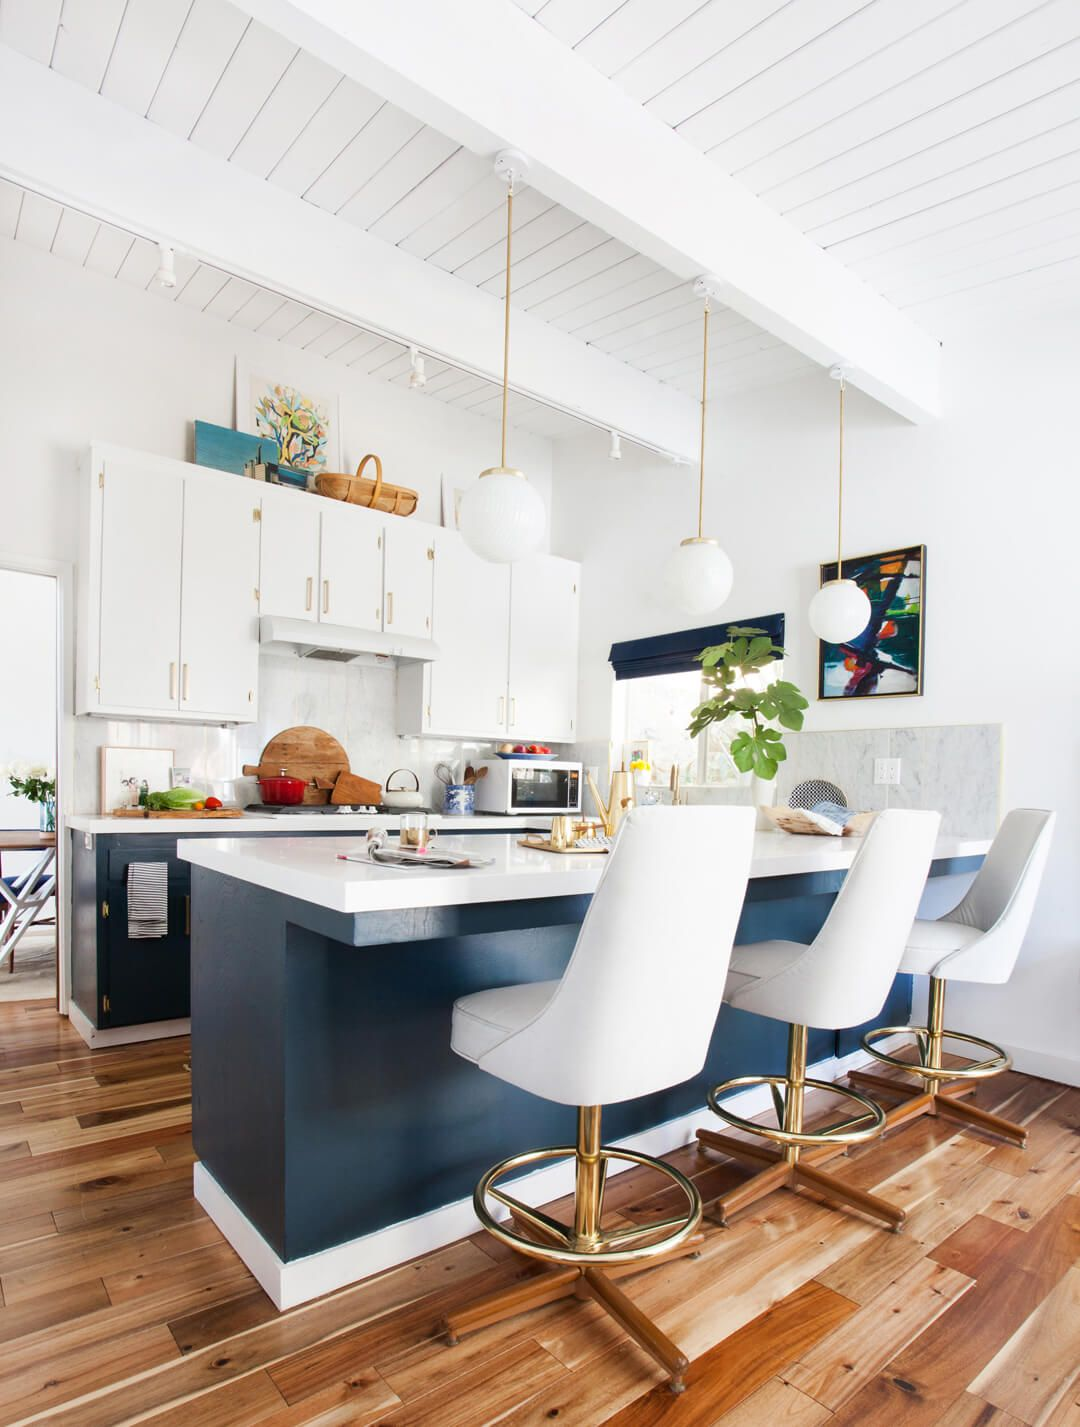 50 Best Small Kitchen Design Ideas - Decor Solutions for ... on Best Small Kitchens  id=18368